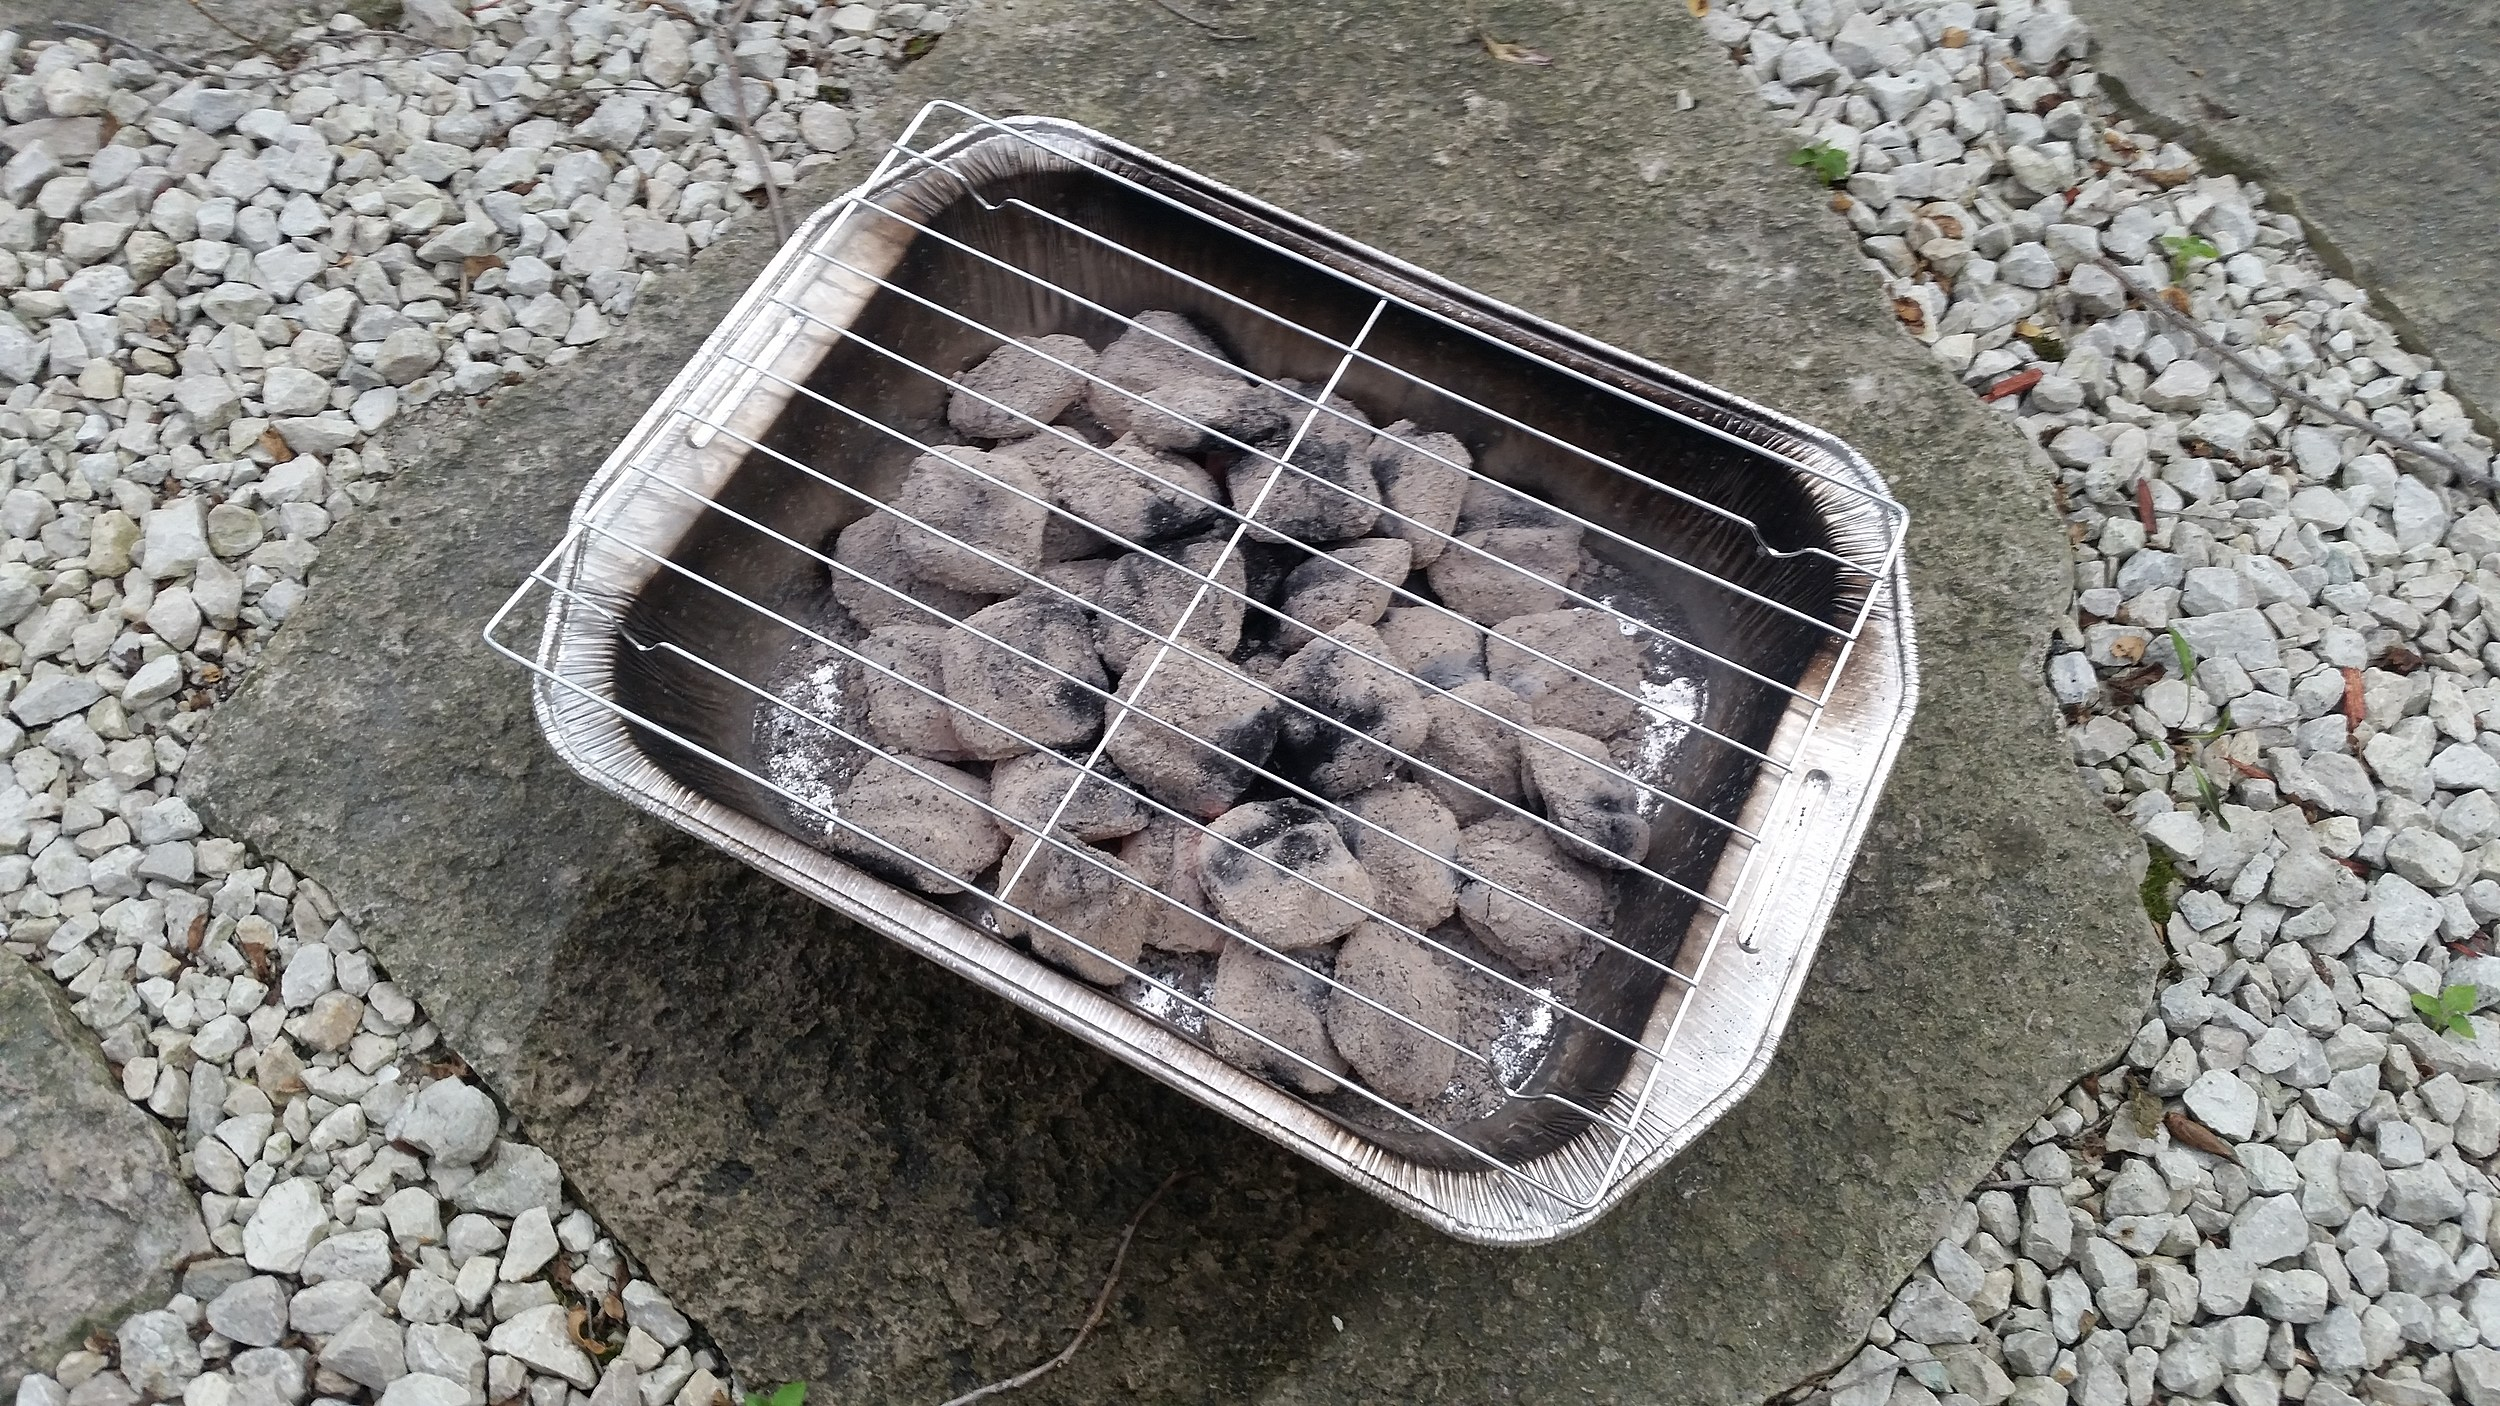 how to make lump charcoal at home